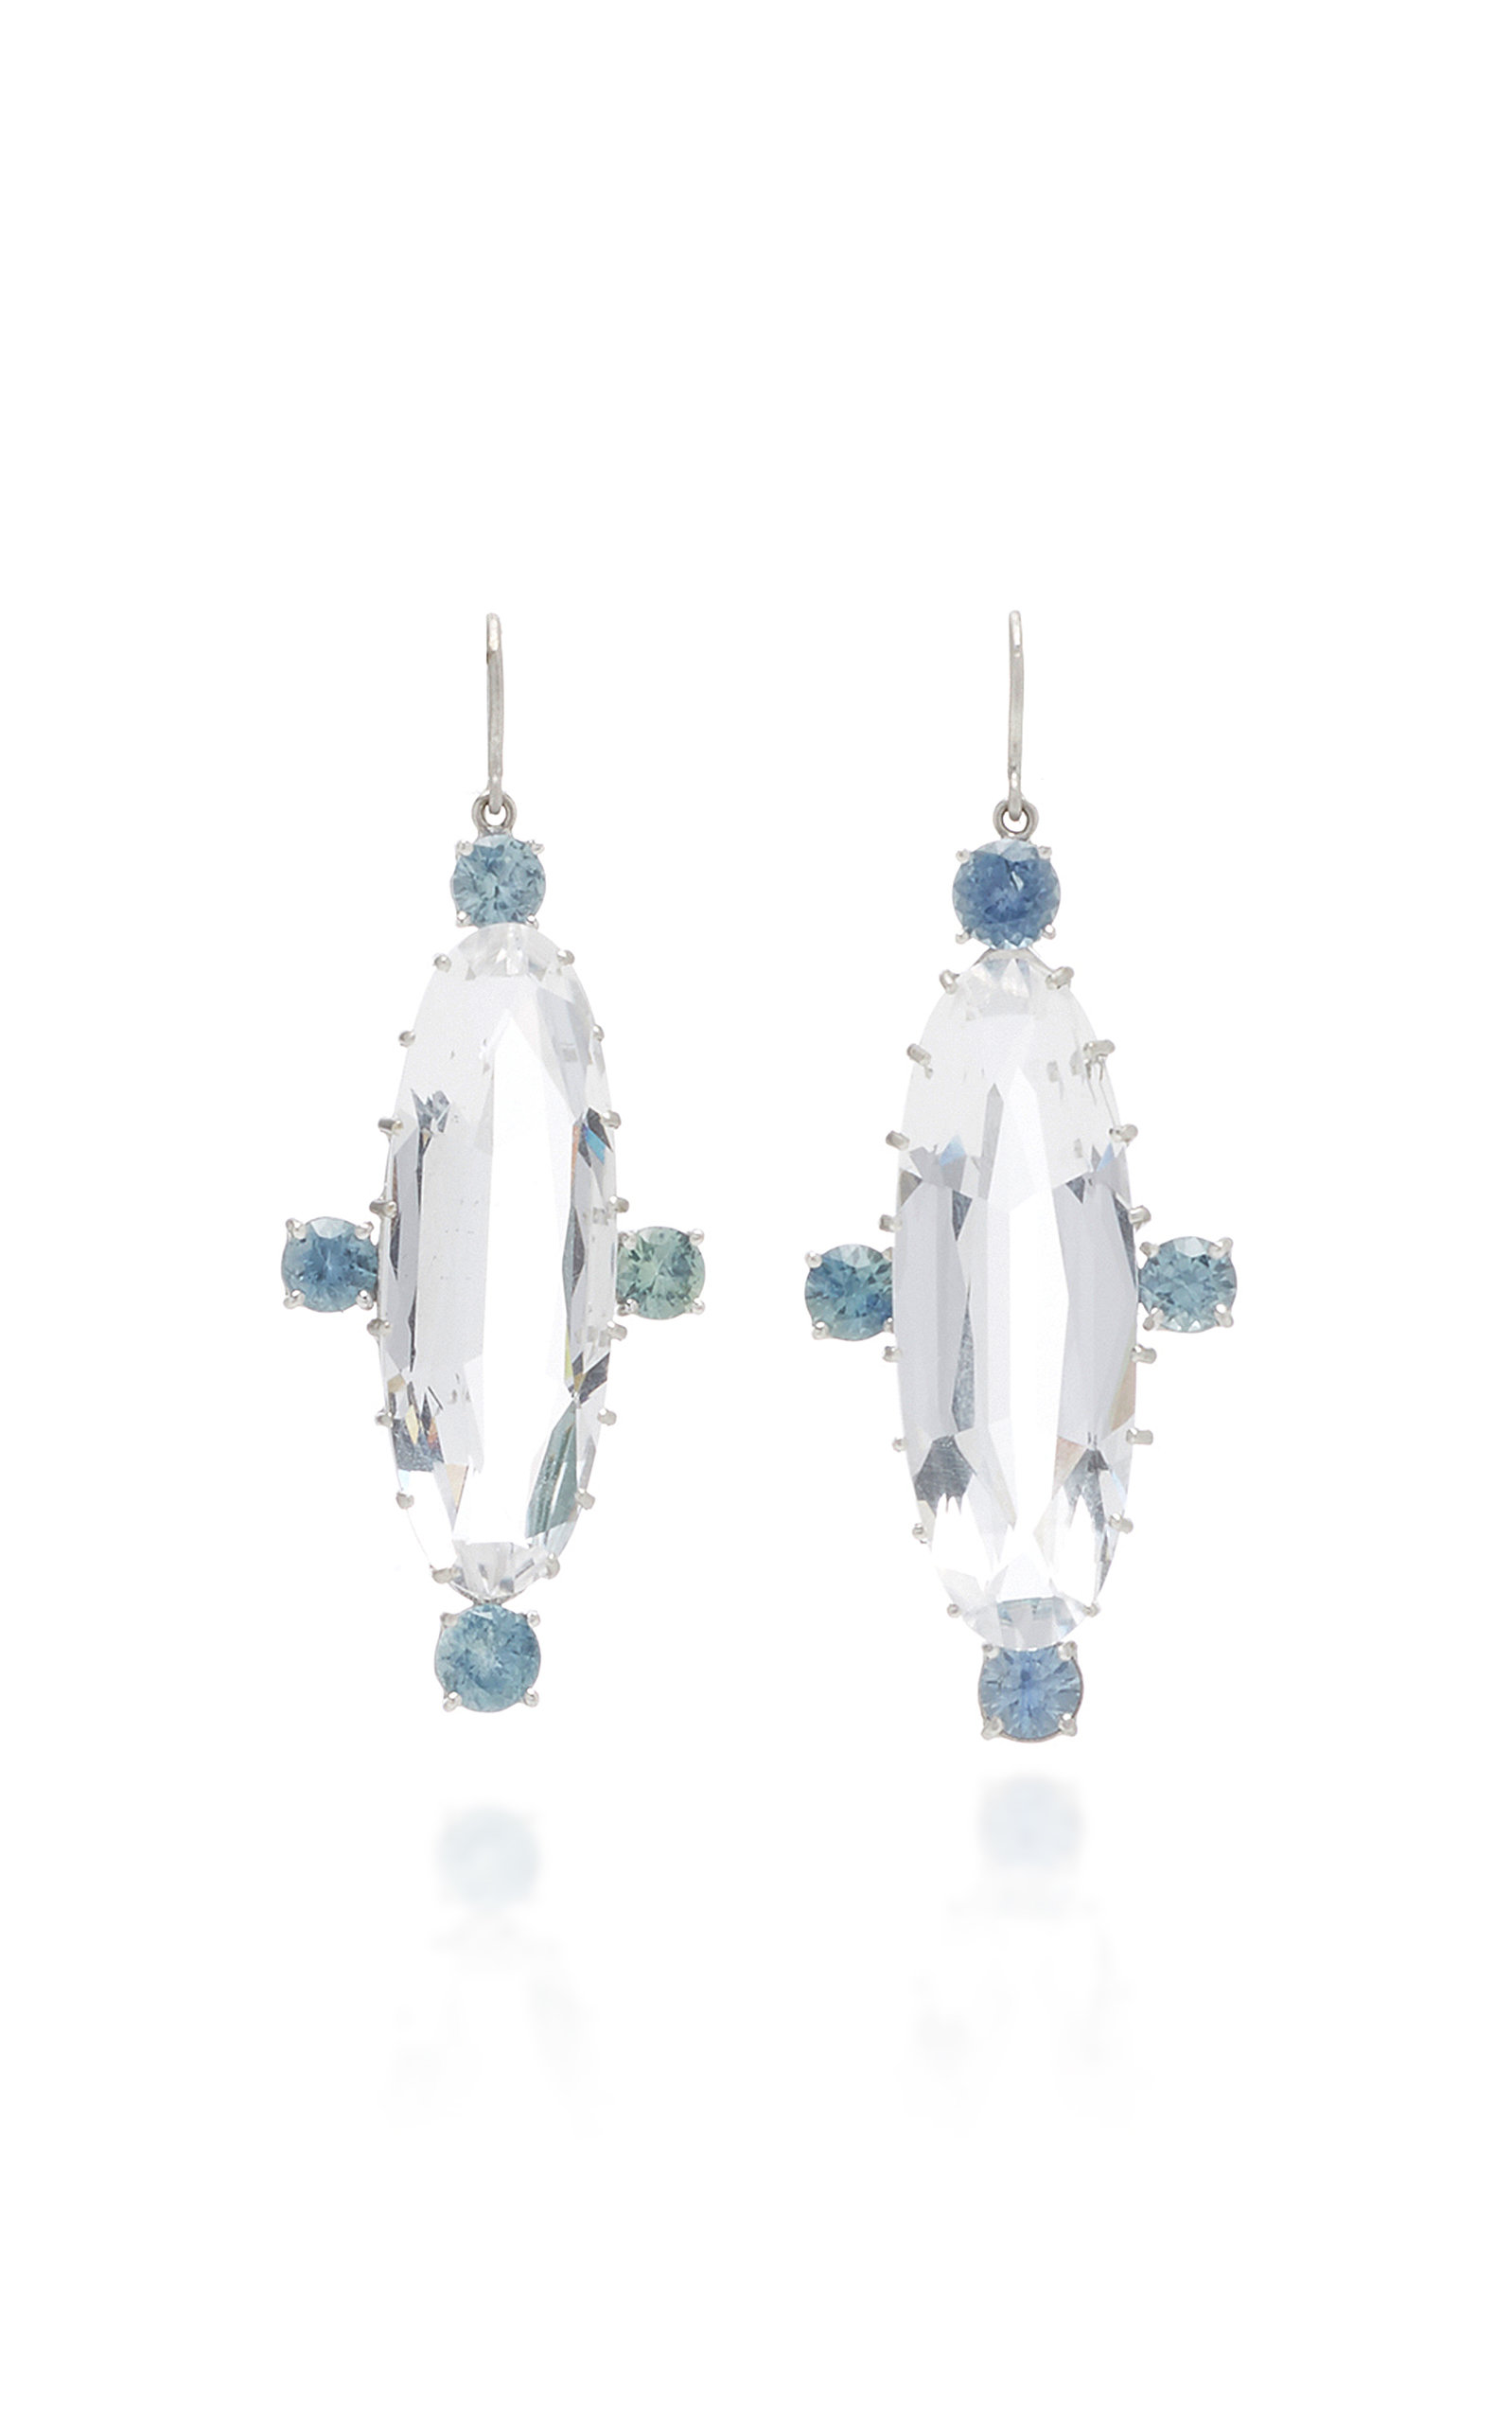 SYLVA & CIE ONE-OF-A-KIND CRYSTAL AND SAPPHIRE EARRINGS